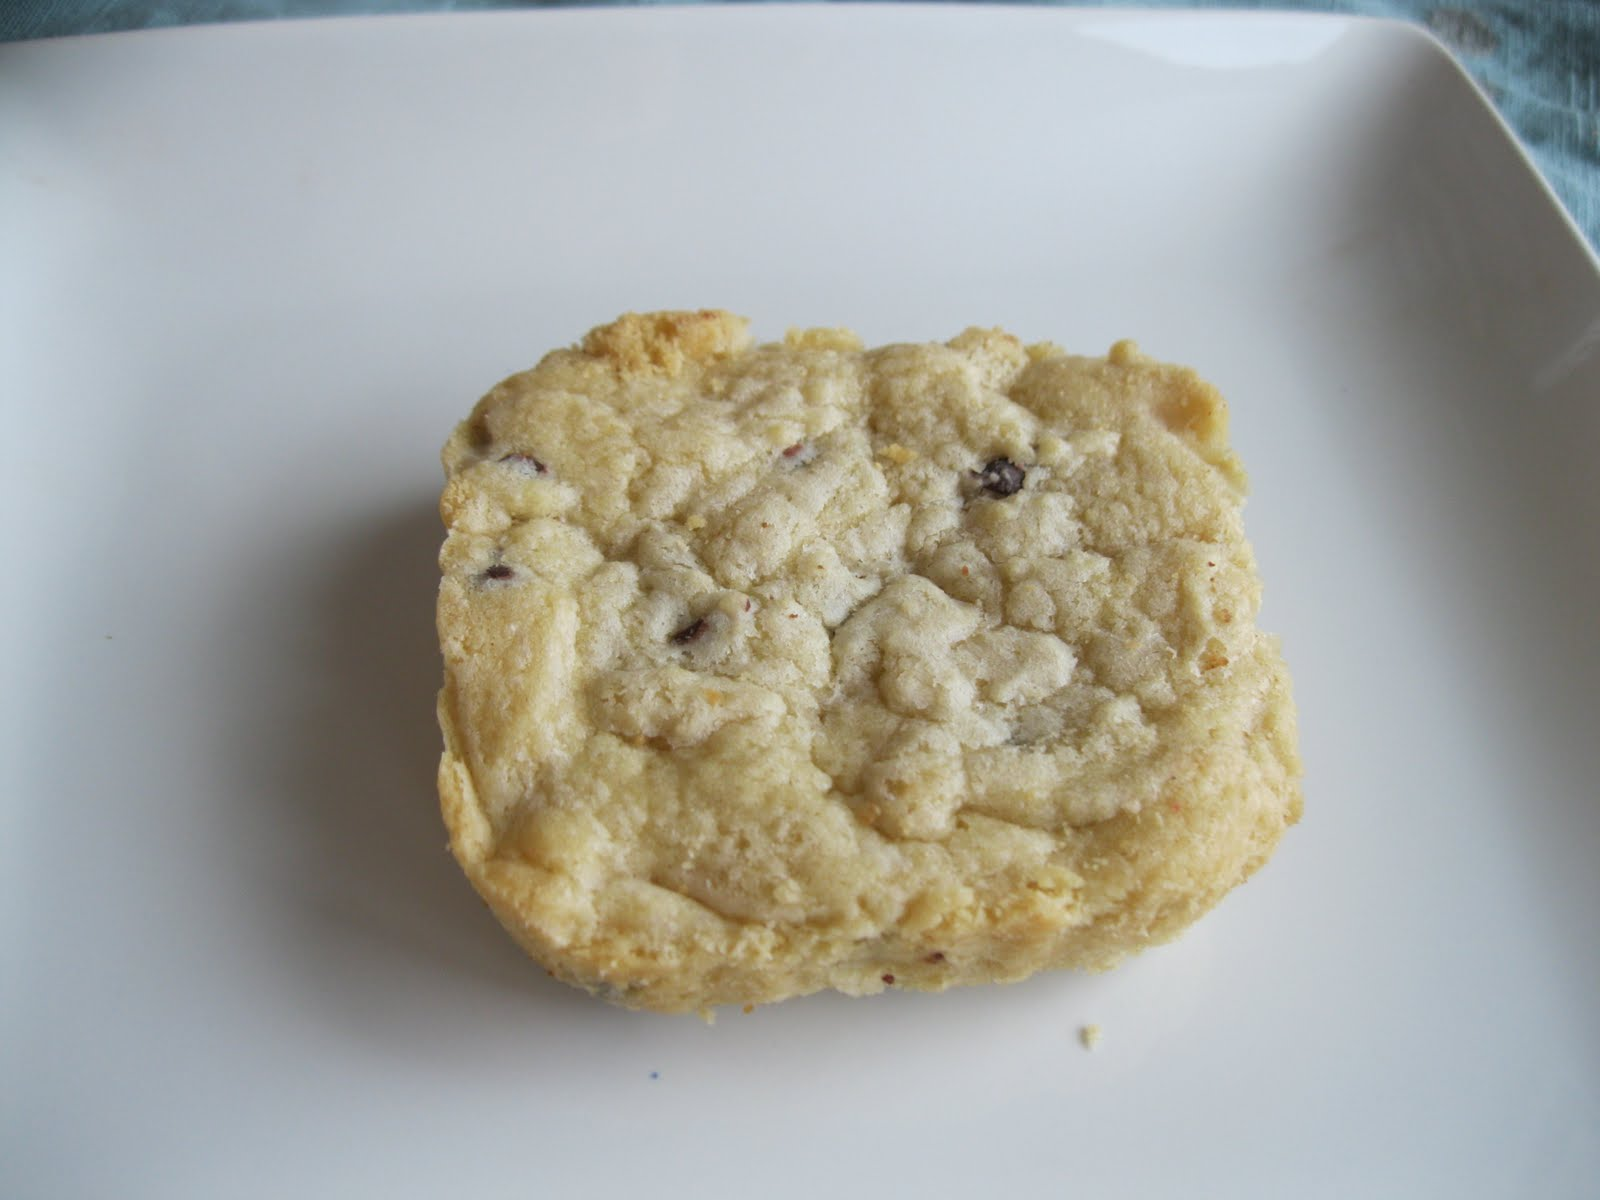 ... classic blondie, which features a bondie base and chocolate chunks